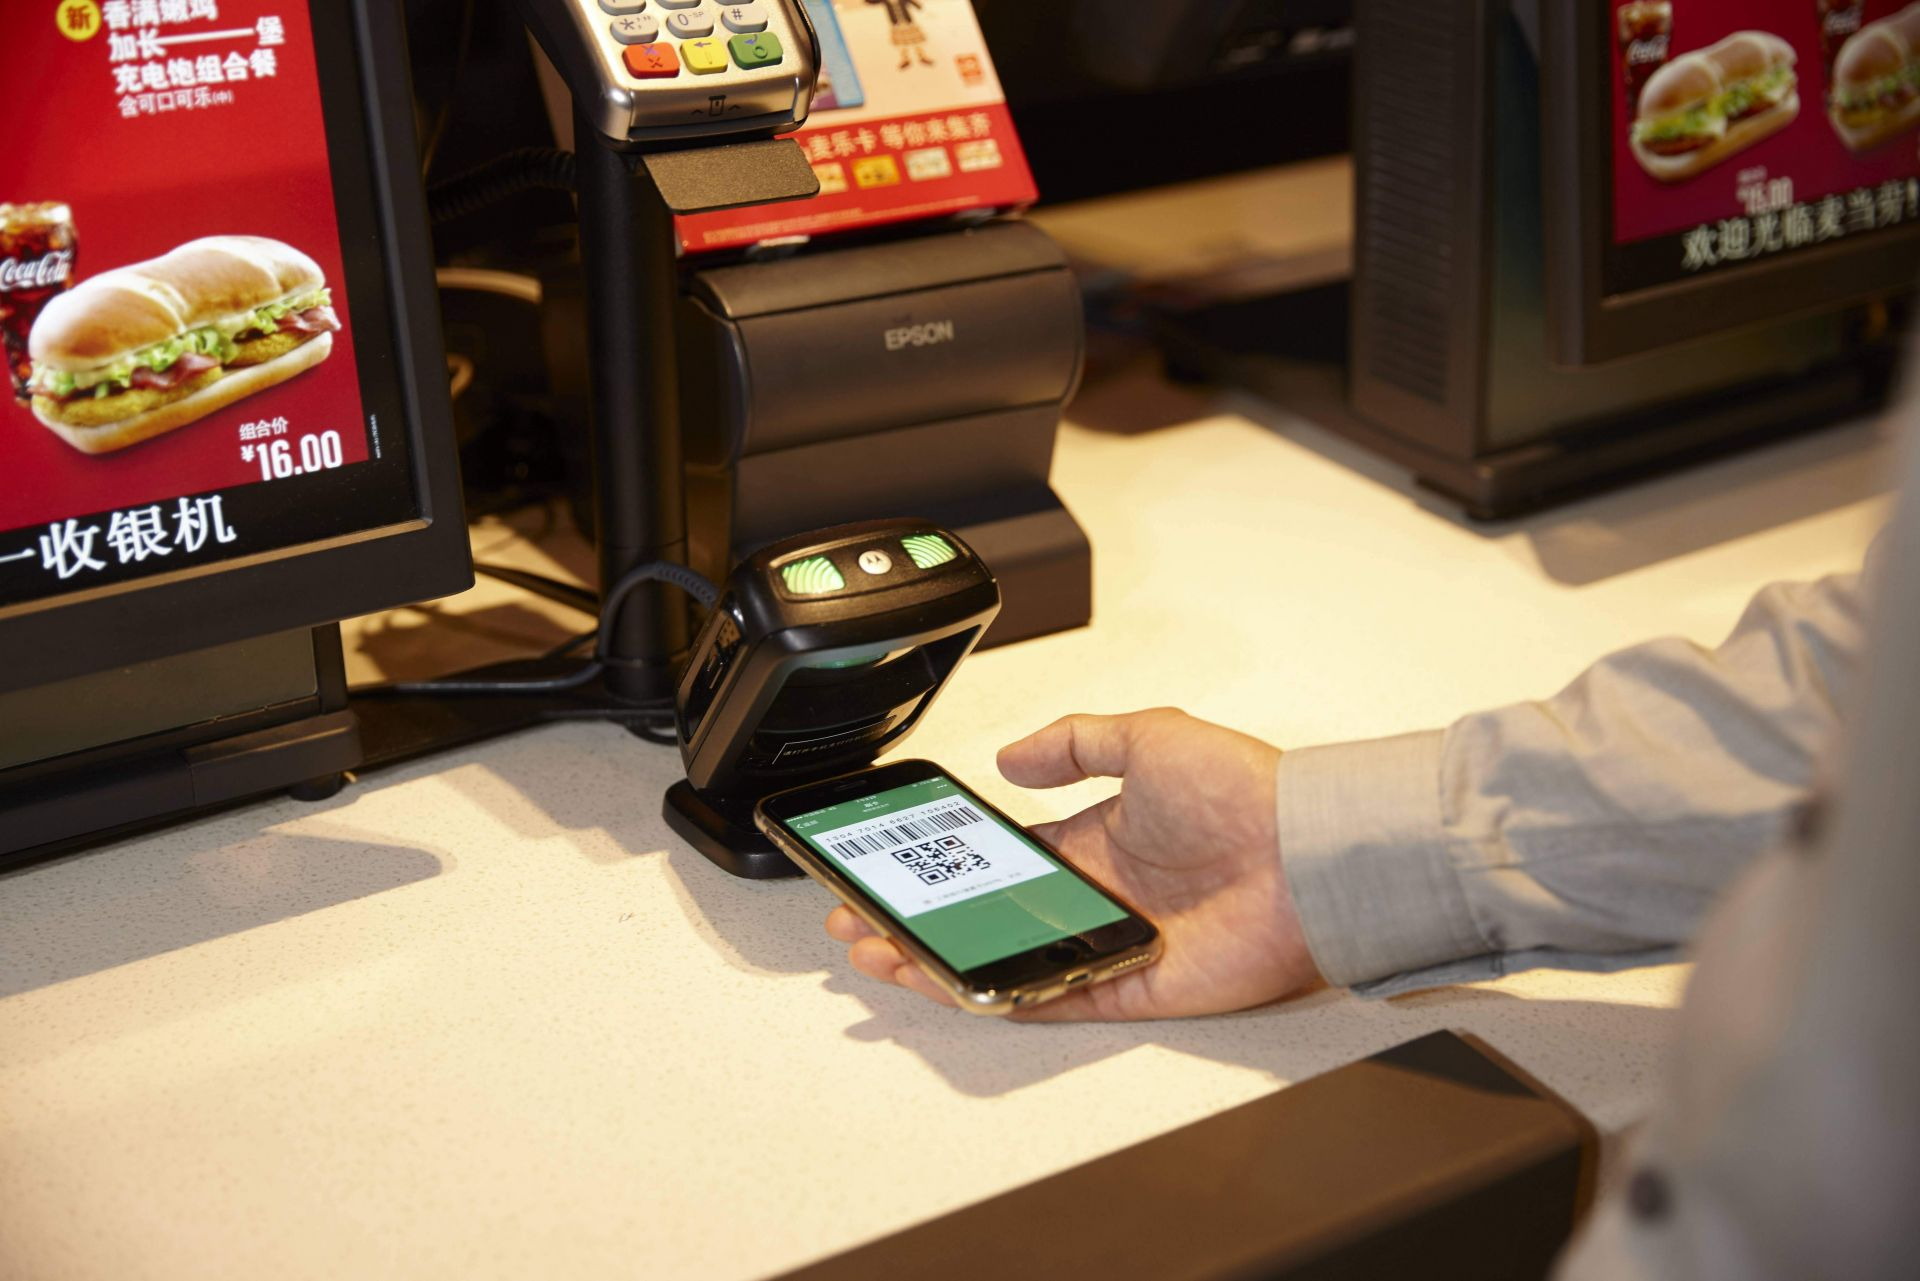 China's mobile payment technology gains popularity overseas